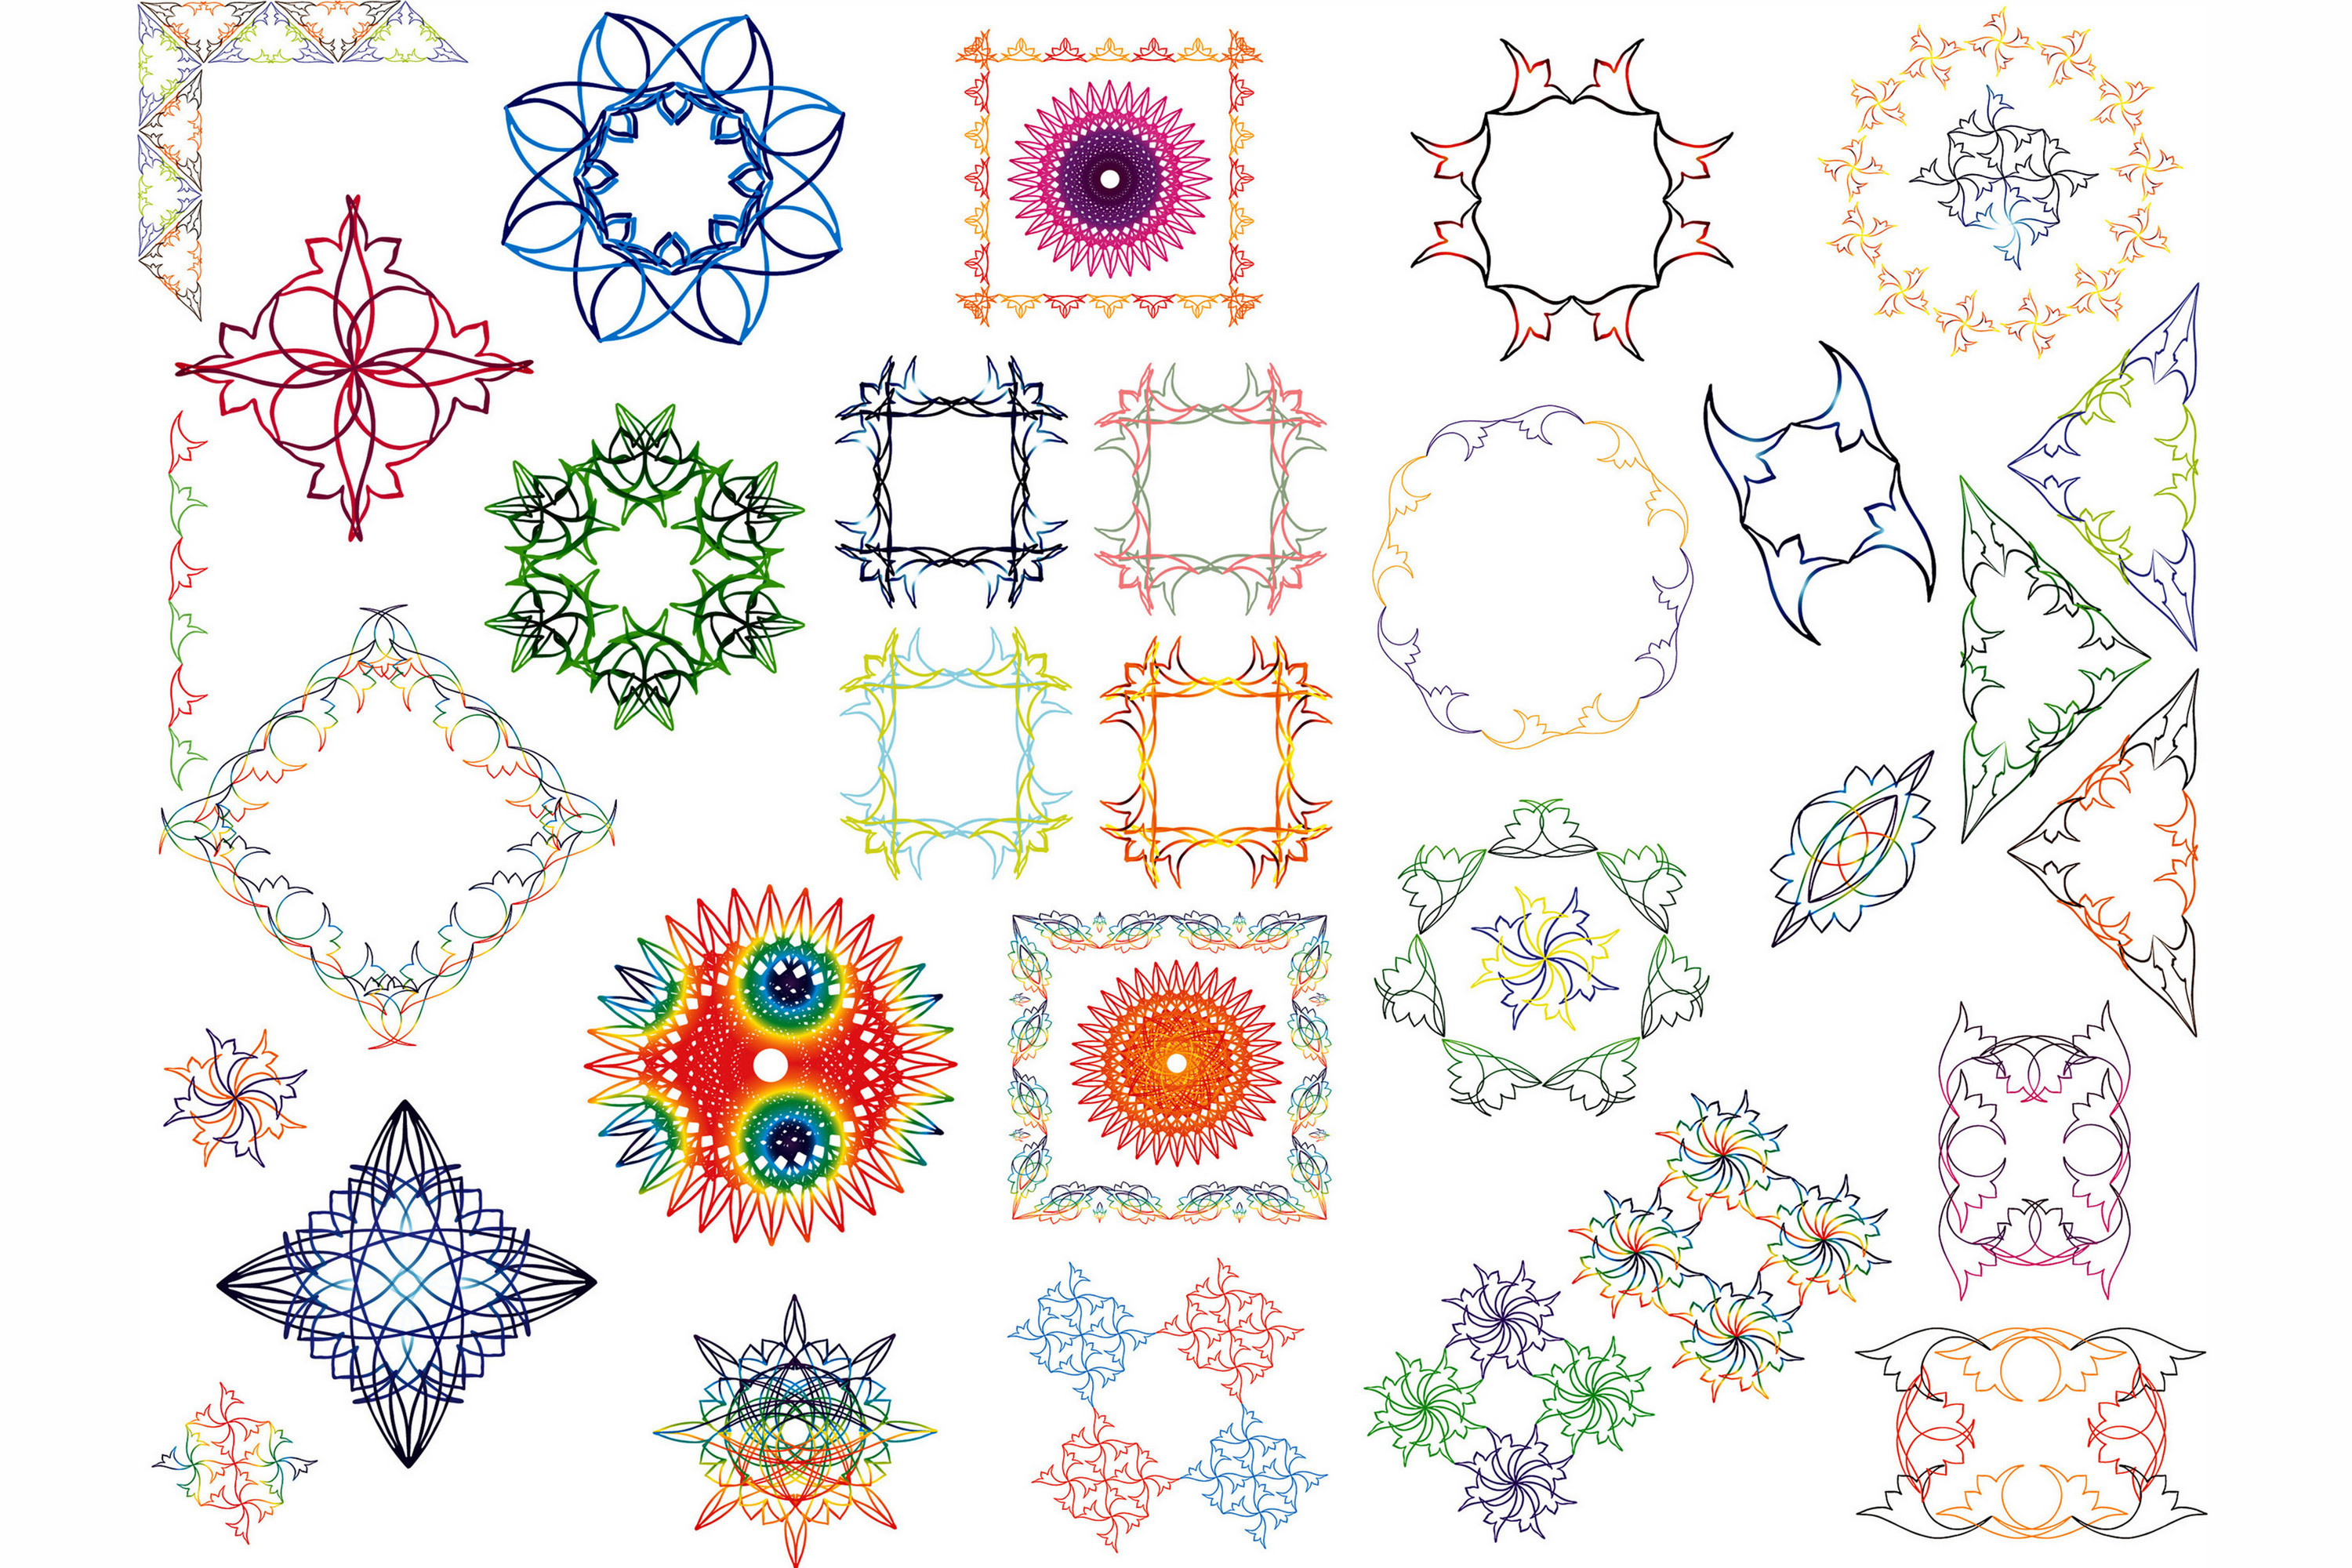 Hand Drawn Vector Design Elements_Volume 1 example image 3